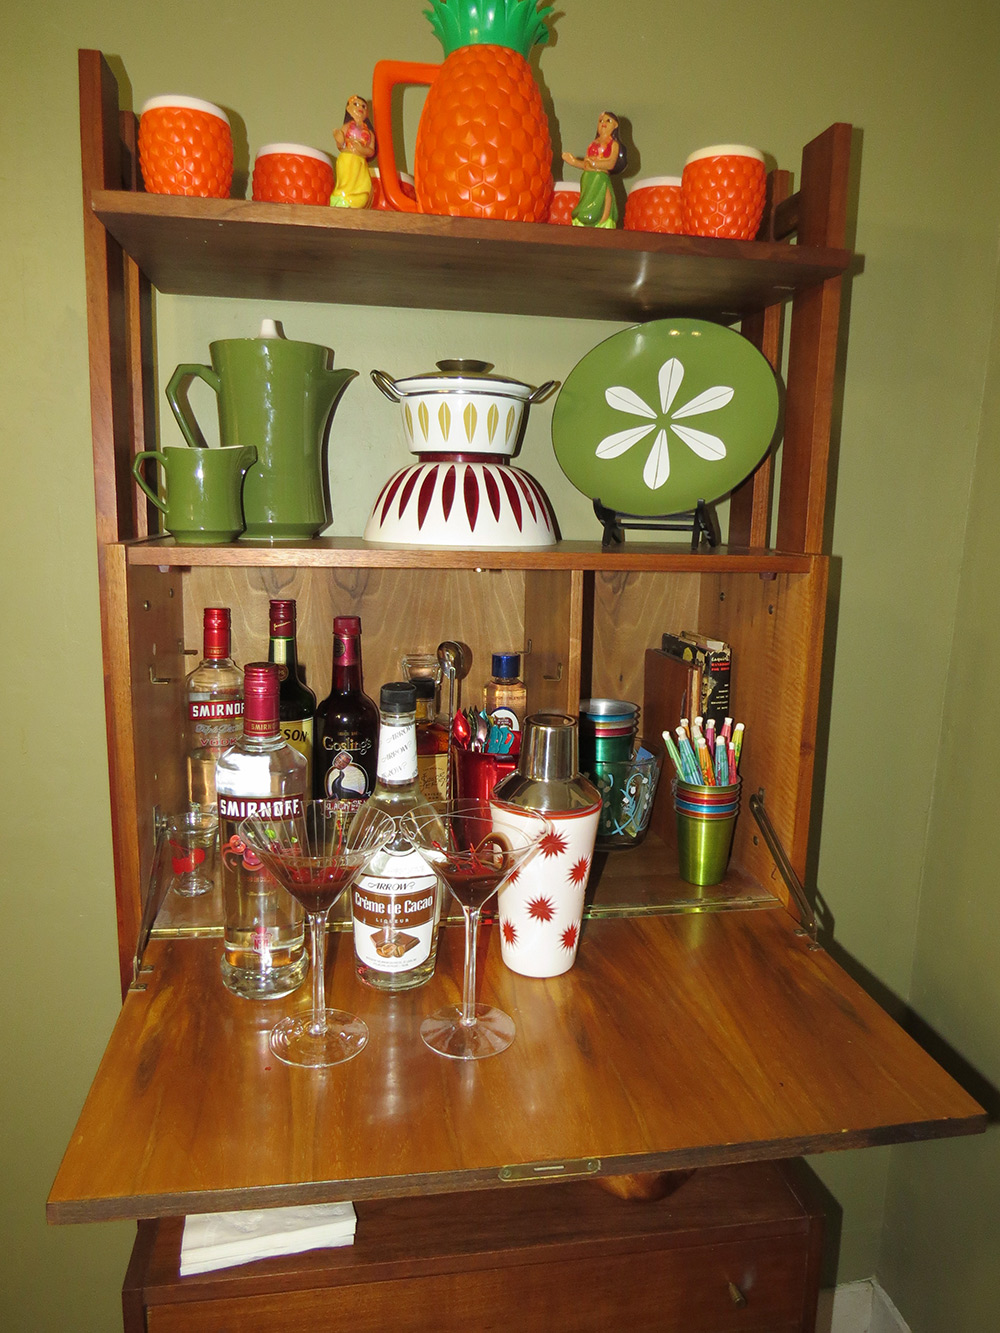 Our new mid-century display cabinet / liquor cabinet